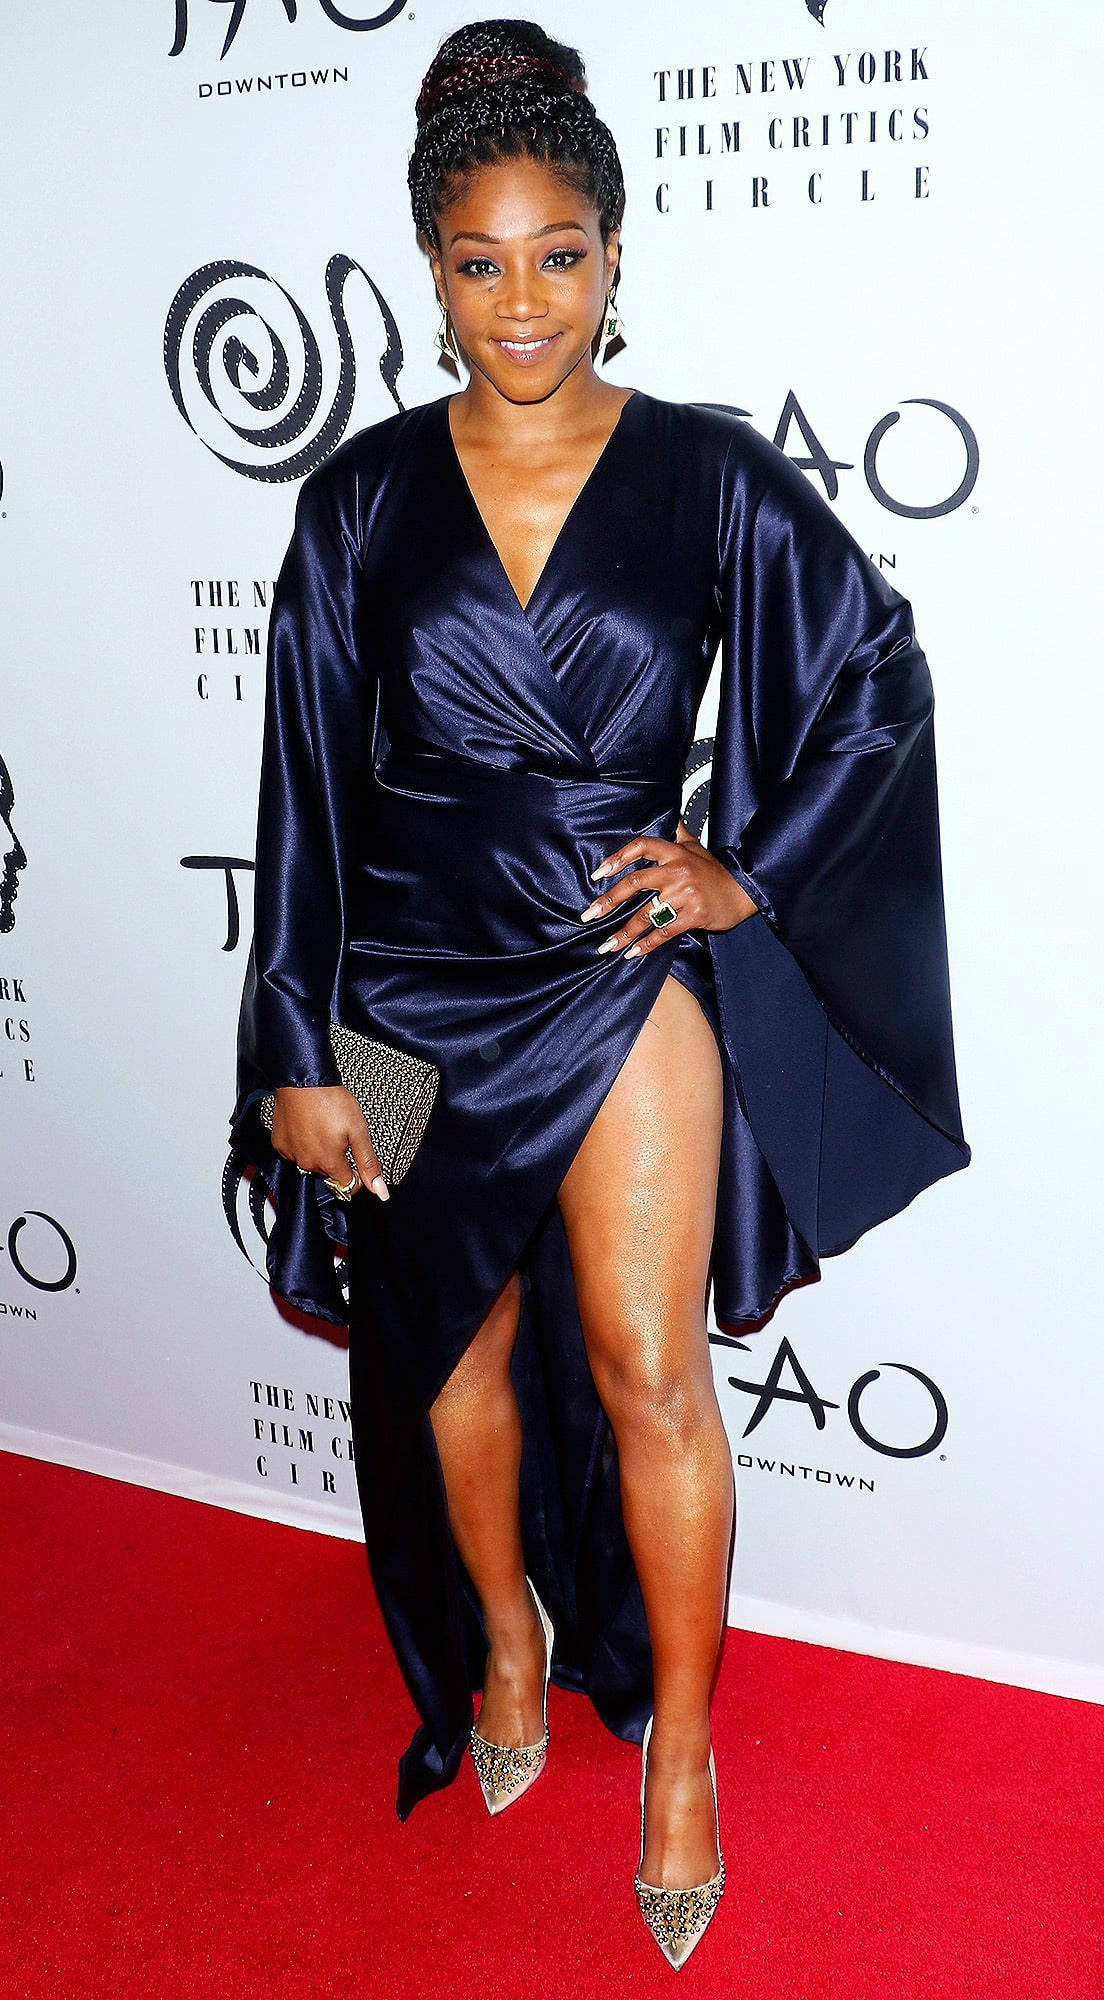 46 Hot And Sexy Pictures Of Tiffany Haddish Are Just Too -4130